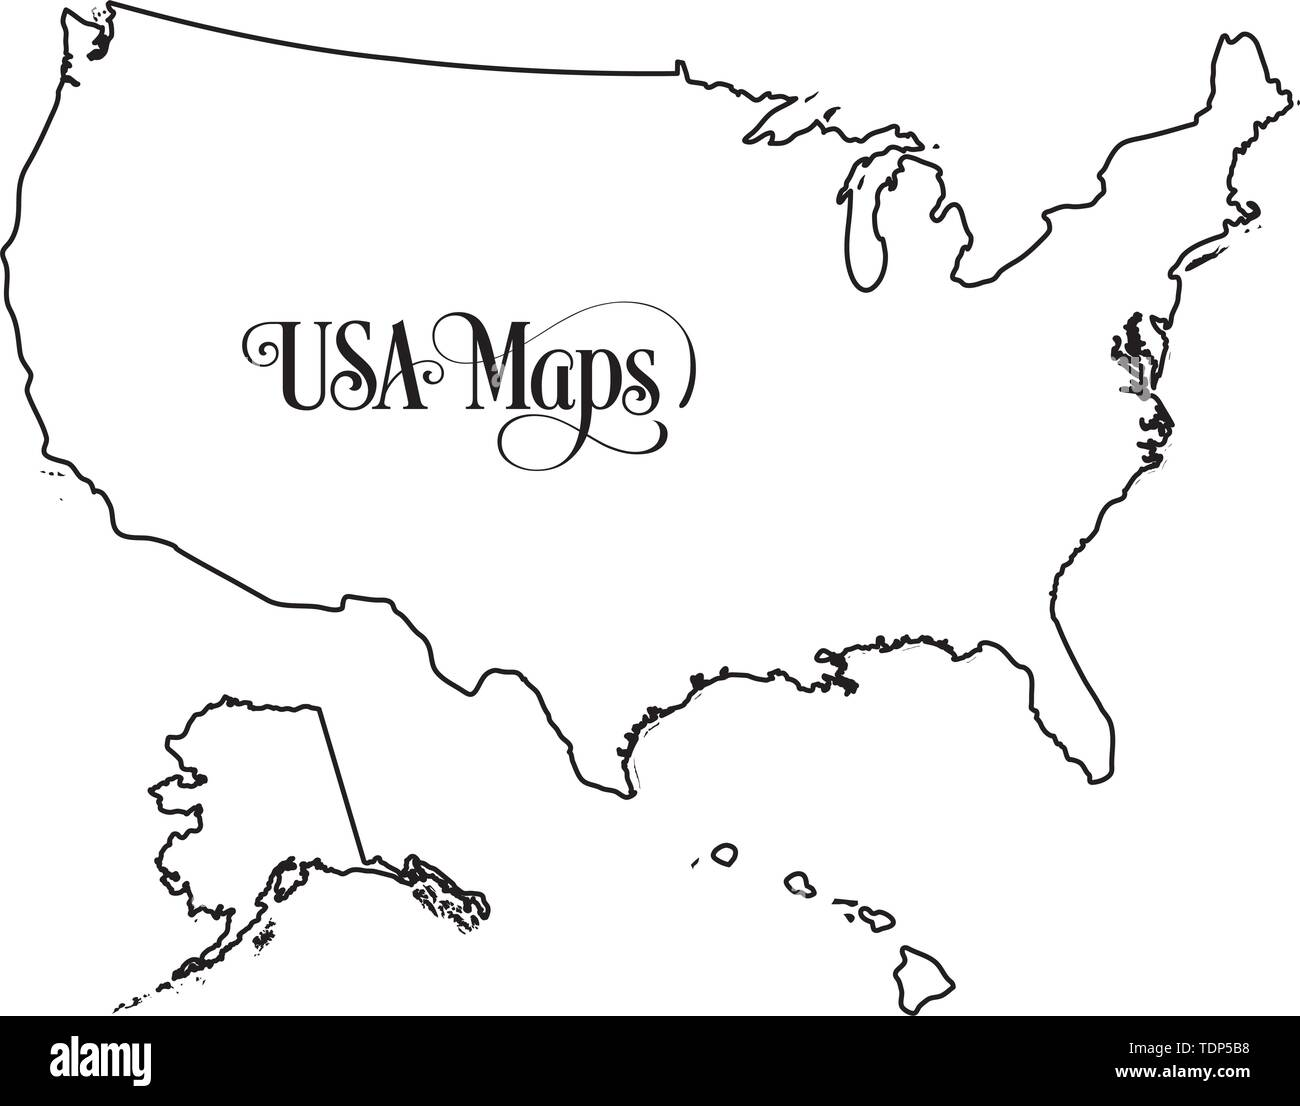 Usa Map Black and White Stock Photos & Images - Alamy